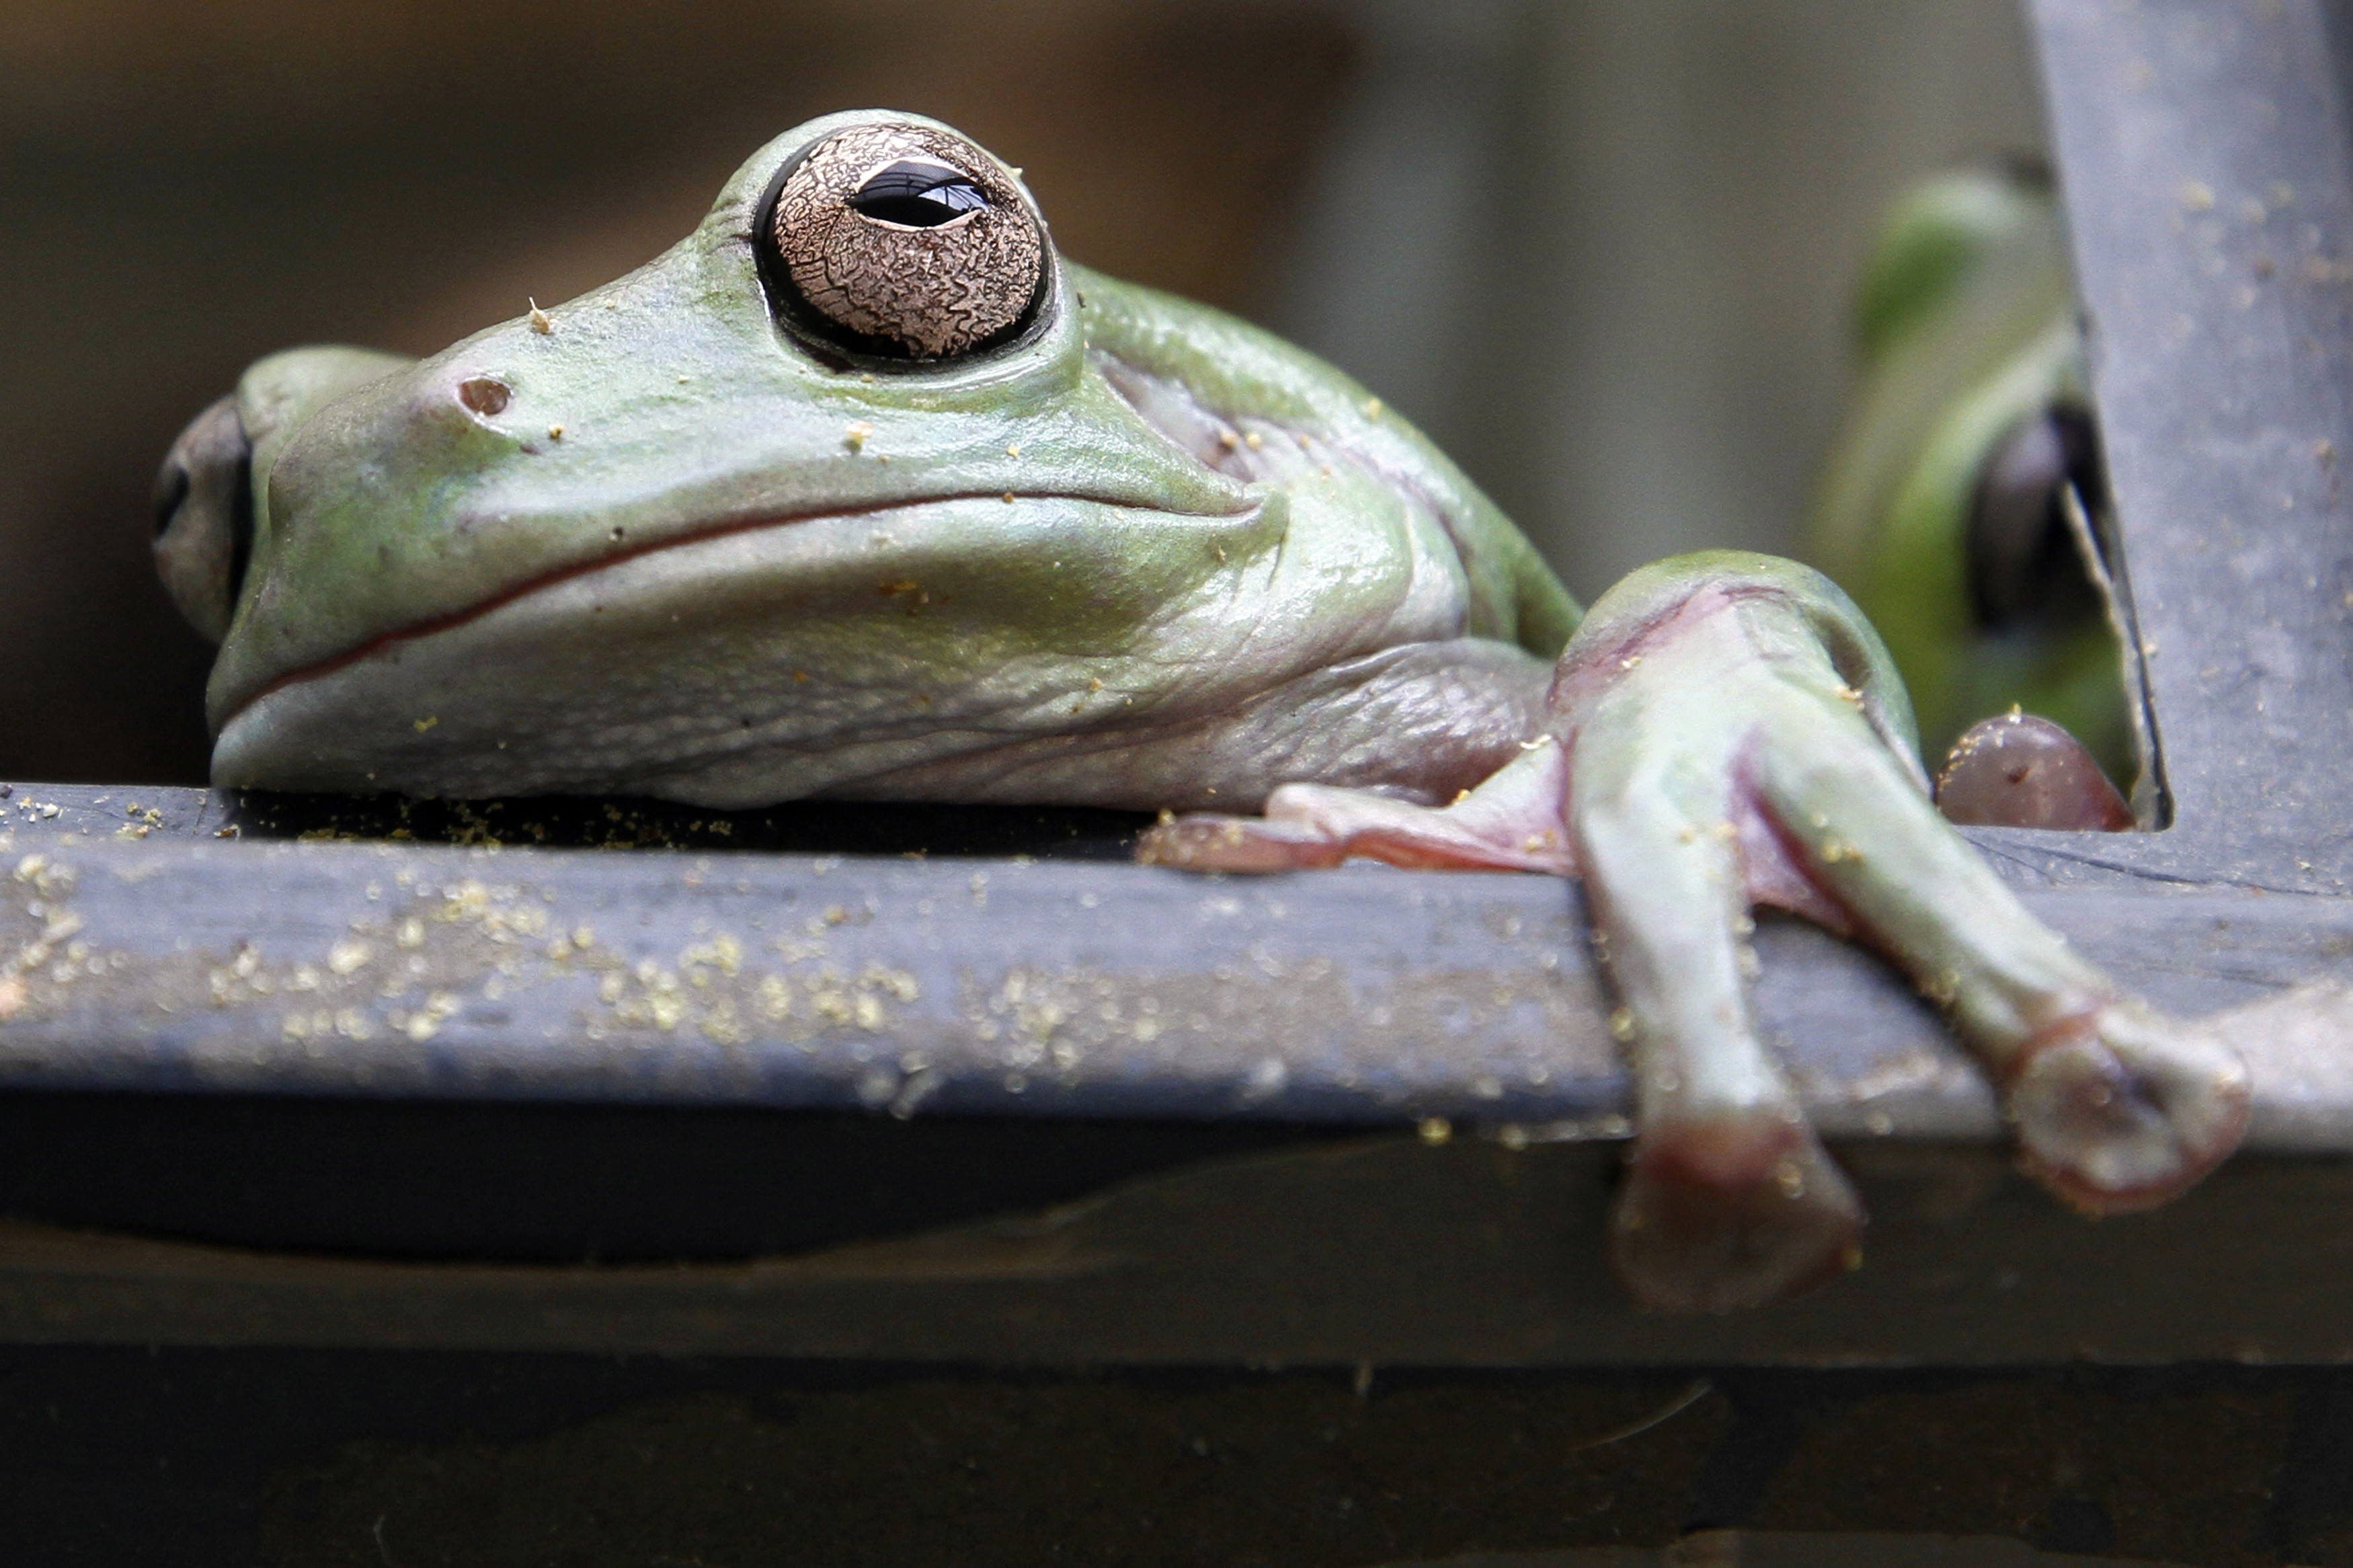 A Mexican Leaf frog